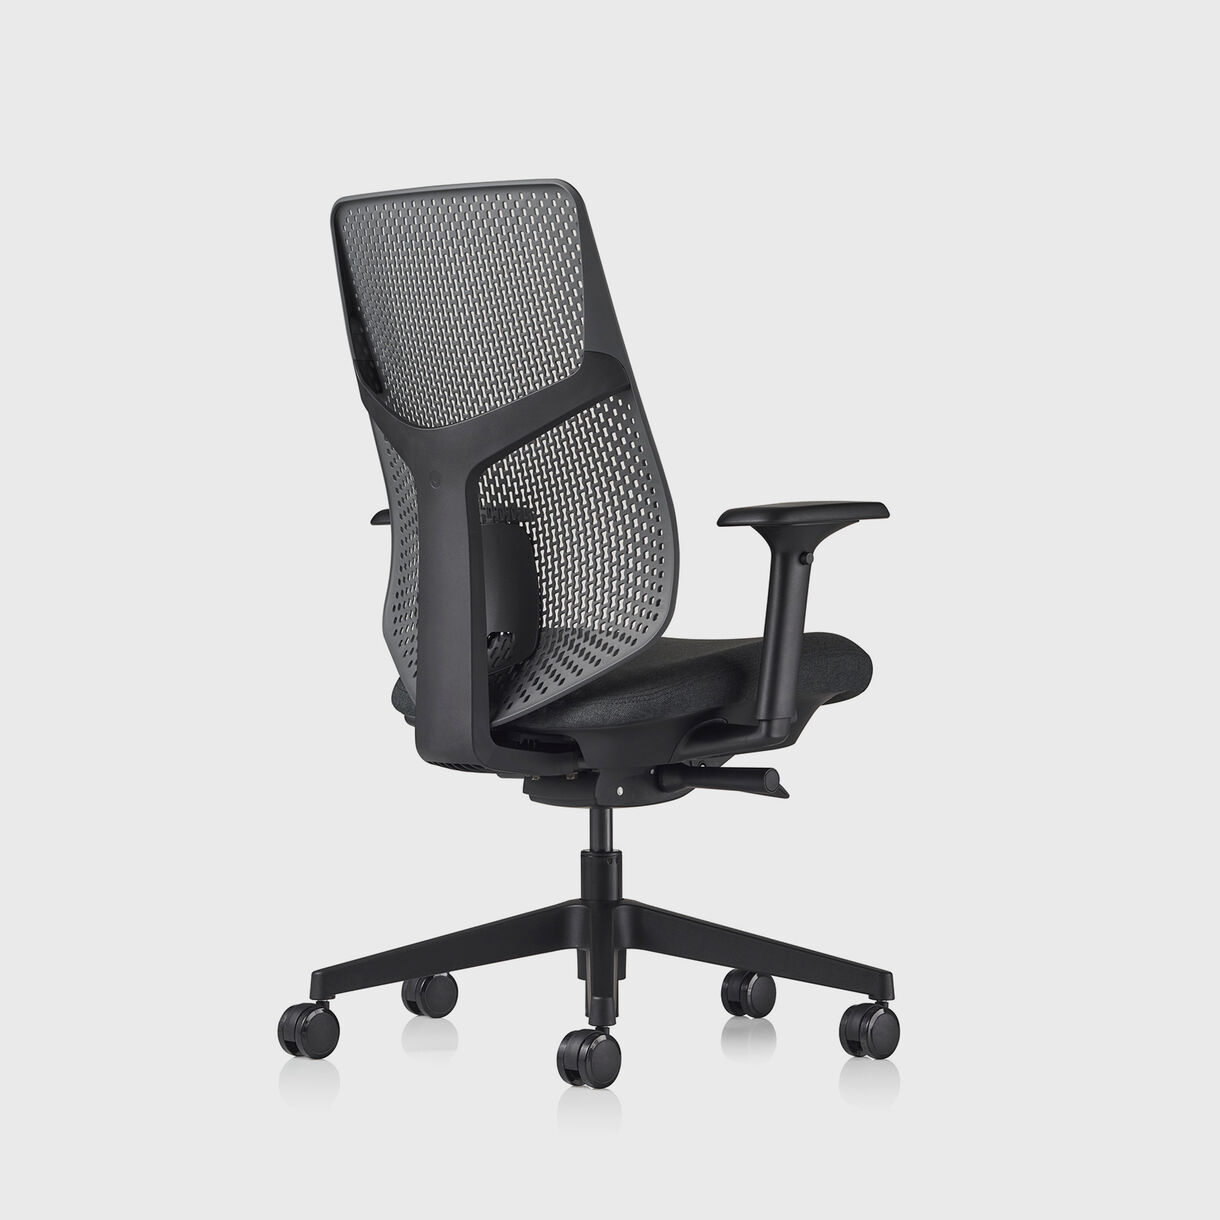 Verus TriFlex Back Task Chair - Black Frame, Dark Carbon TriFlex & Cinder Upholstery - Fully Adjustable Arms